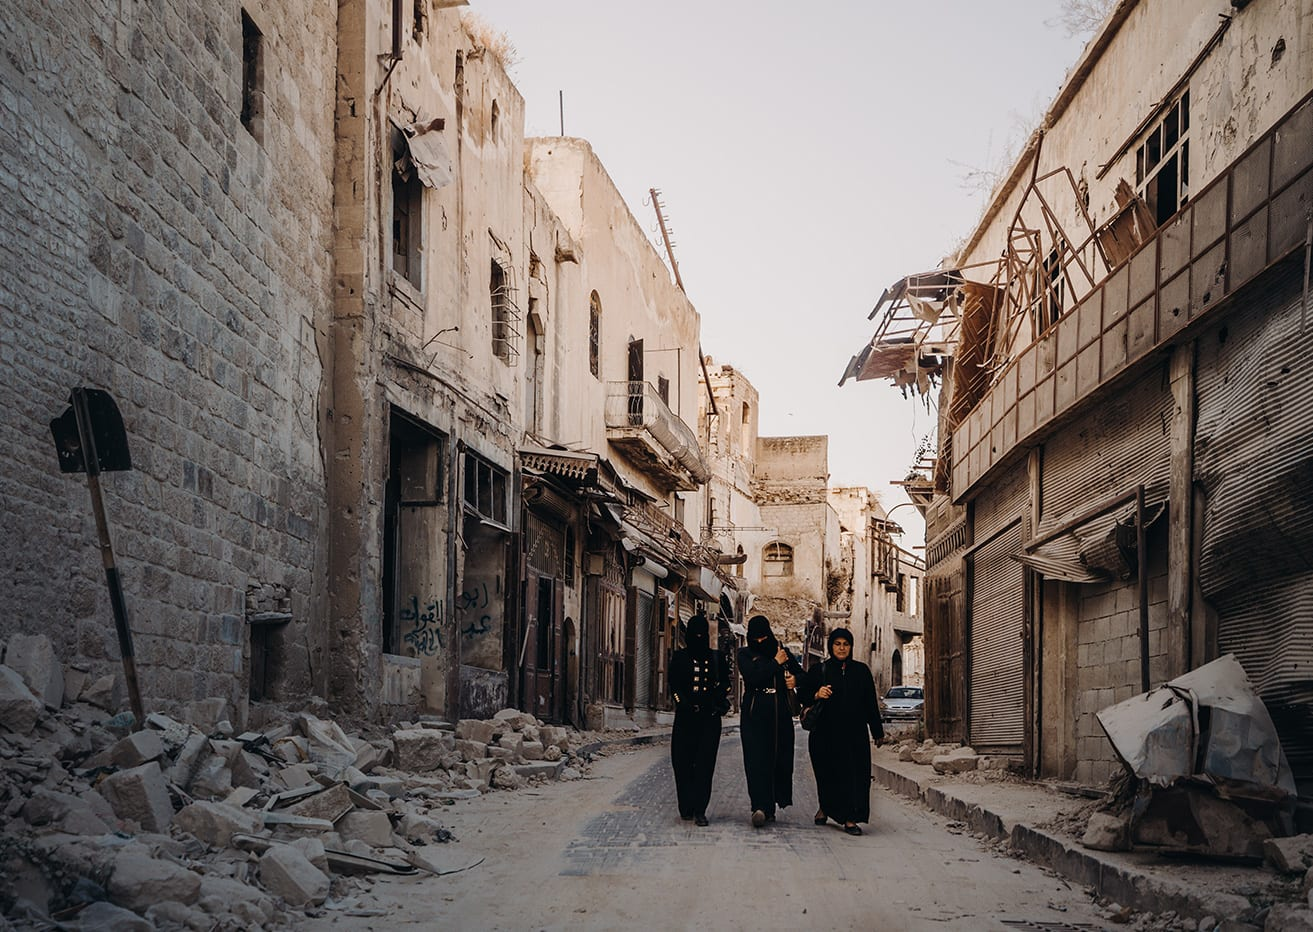 COVID-19 turns 'bad' to 'worse' in Syria, but hope remains